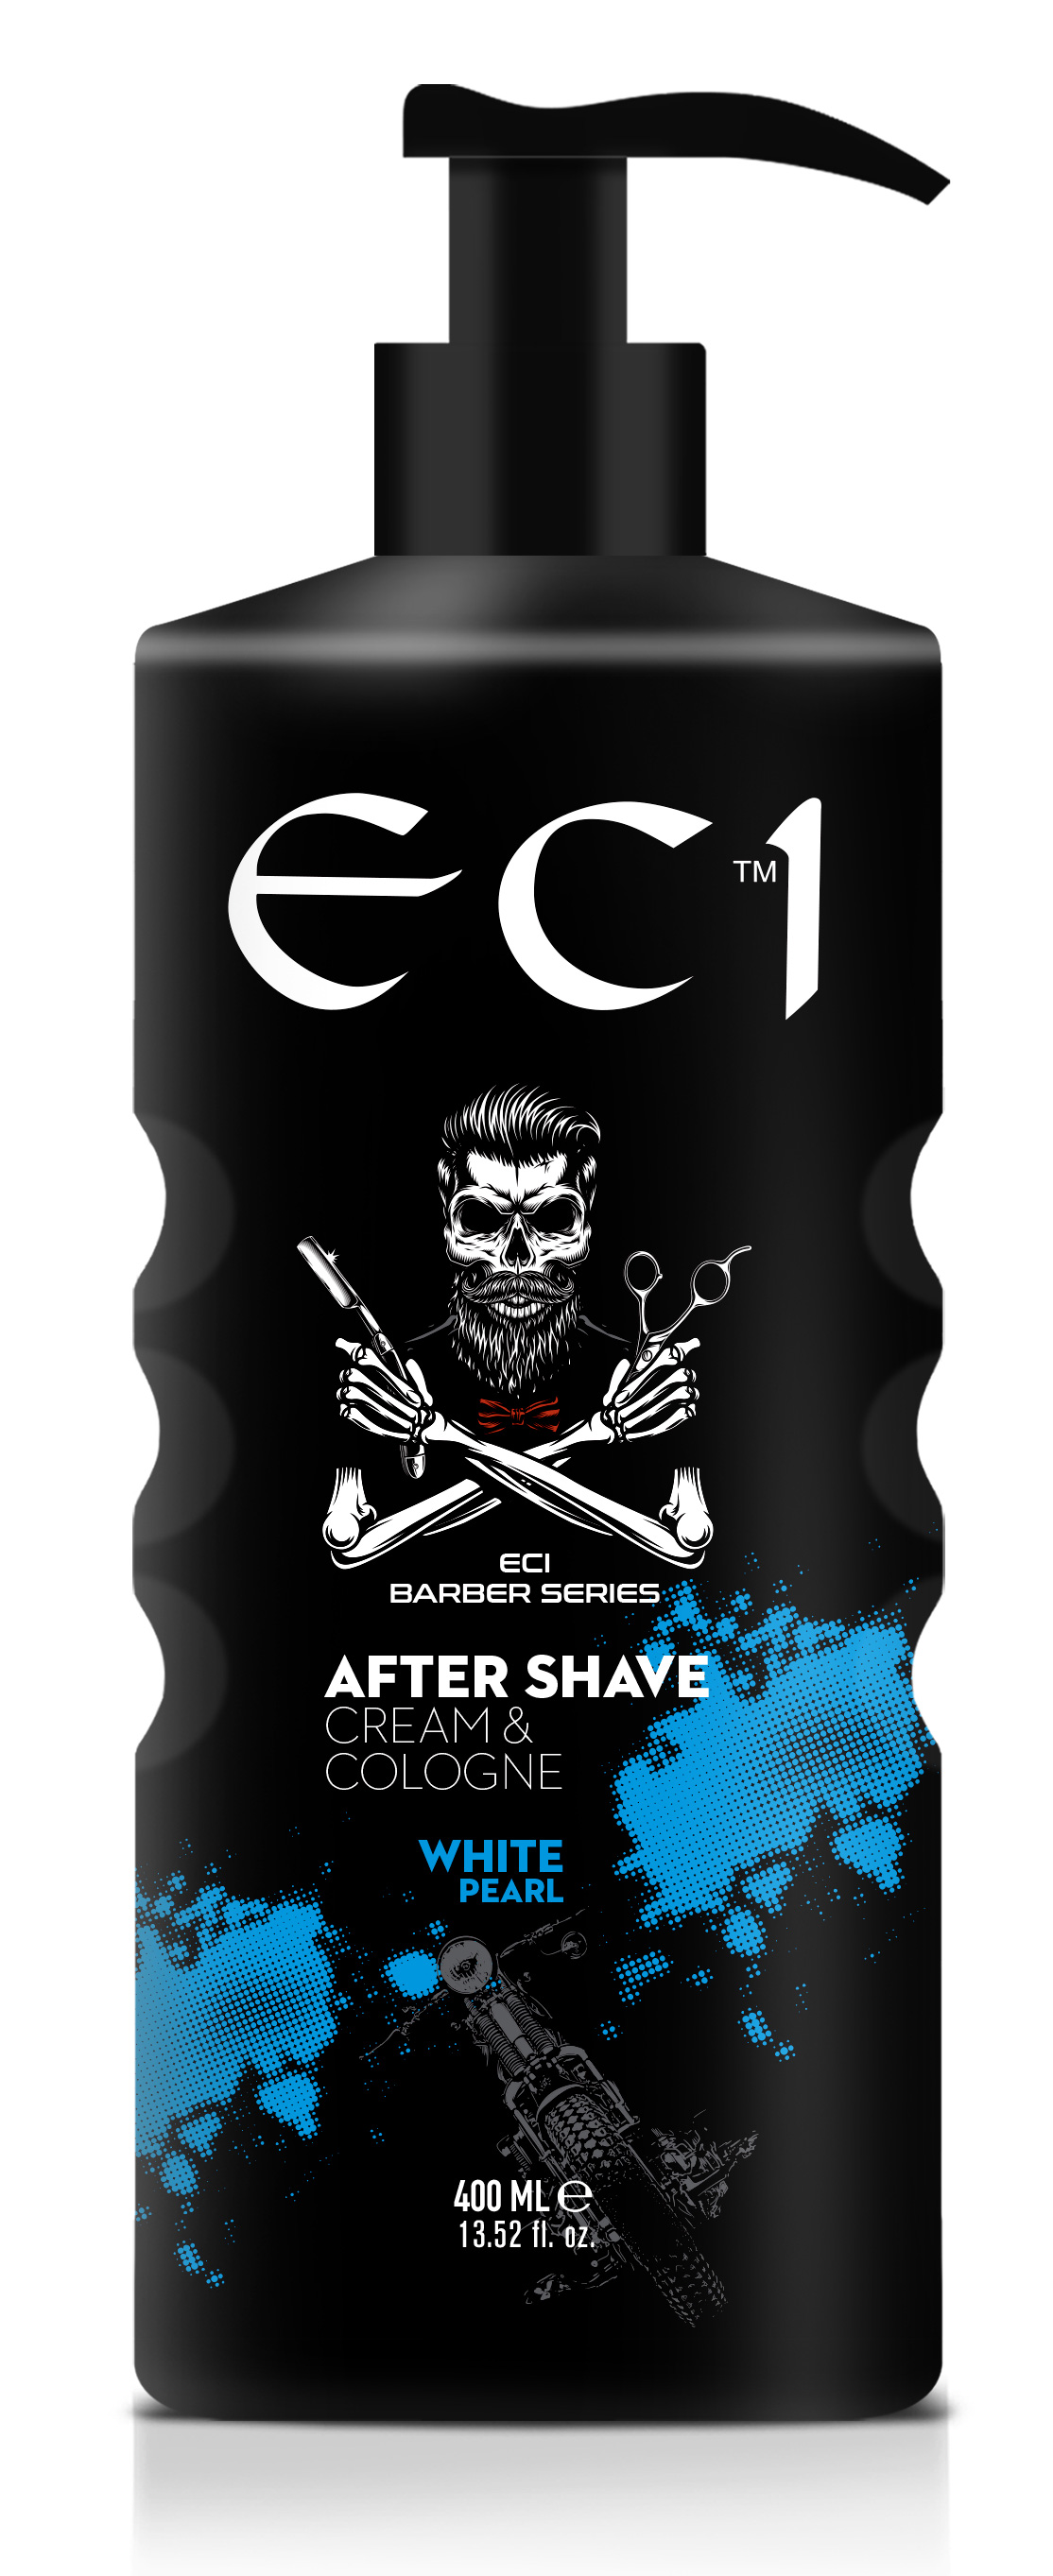 ECI After Shave Cream Cologne 400ml hot selling bulk container shipment product for professional use, superior quality